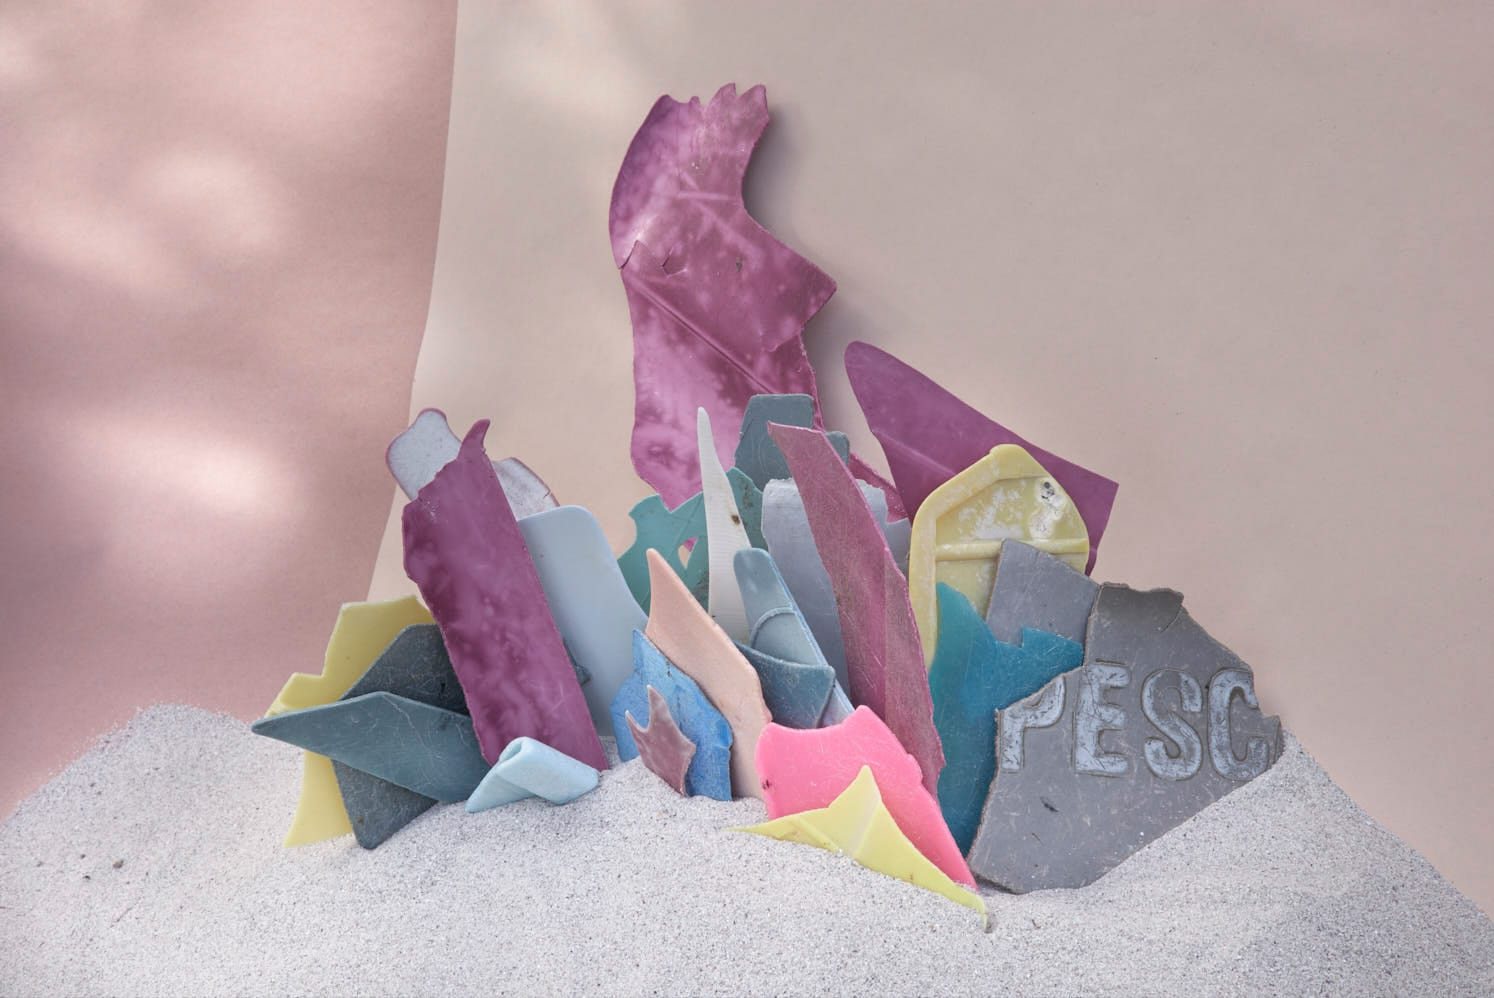 Plastic Ocean by Thirza Schaap | Yellowtrace